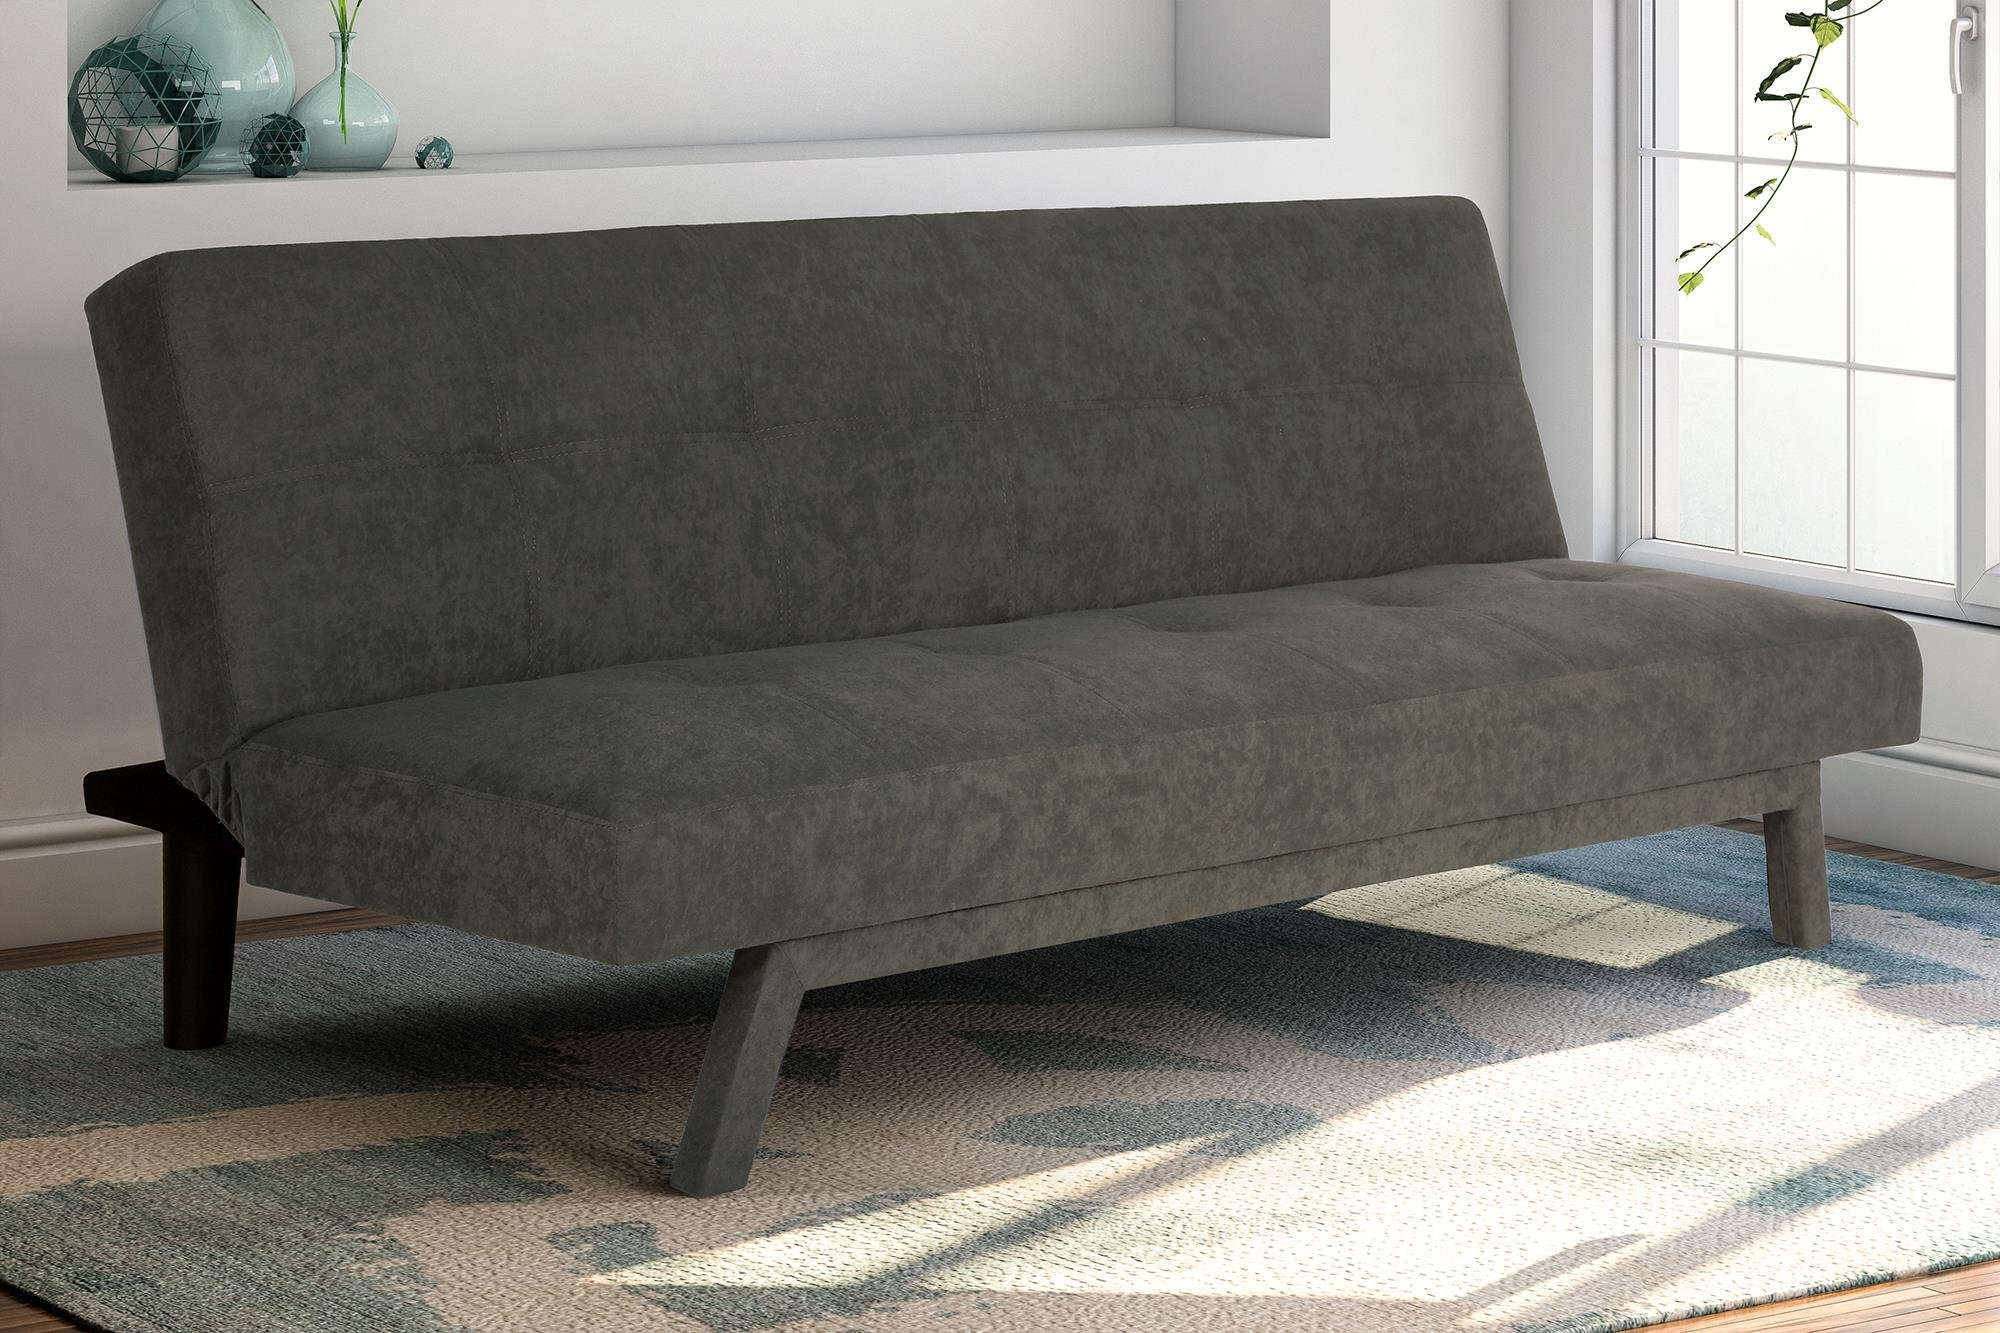 Futon Sofa Bed Lounge Couch Bed Upholstered Sturdy Convertible Sleeper Gray New Ebay